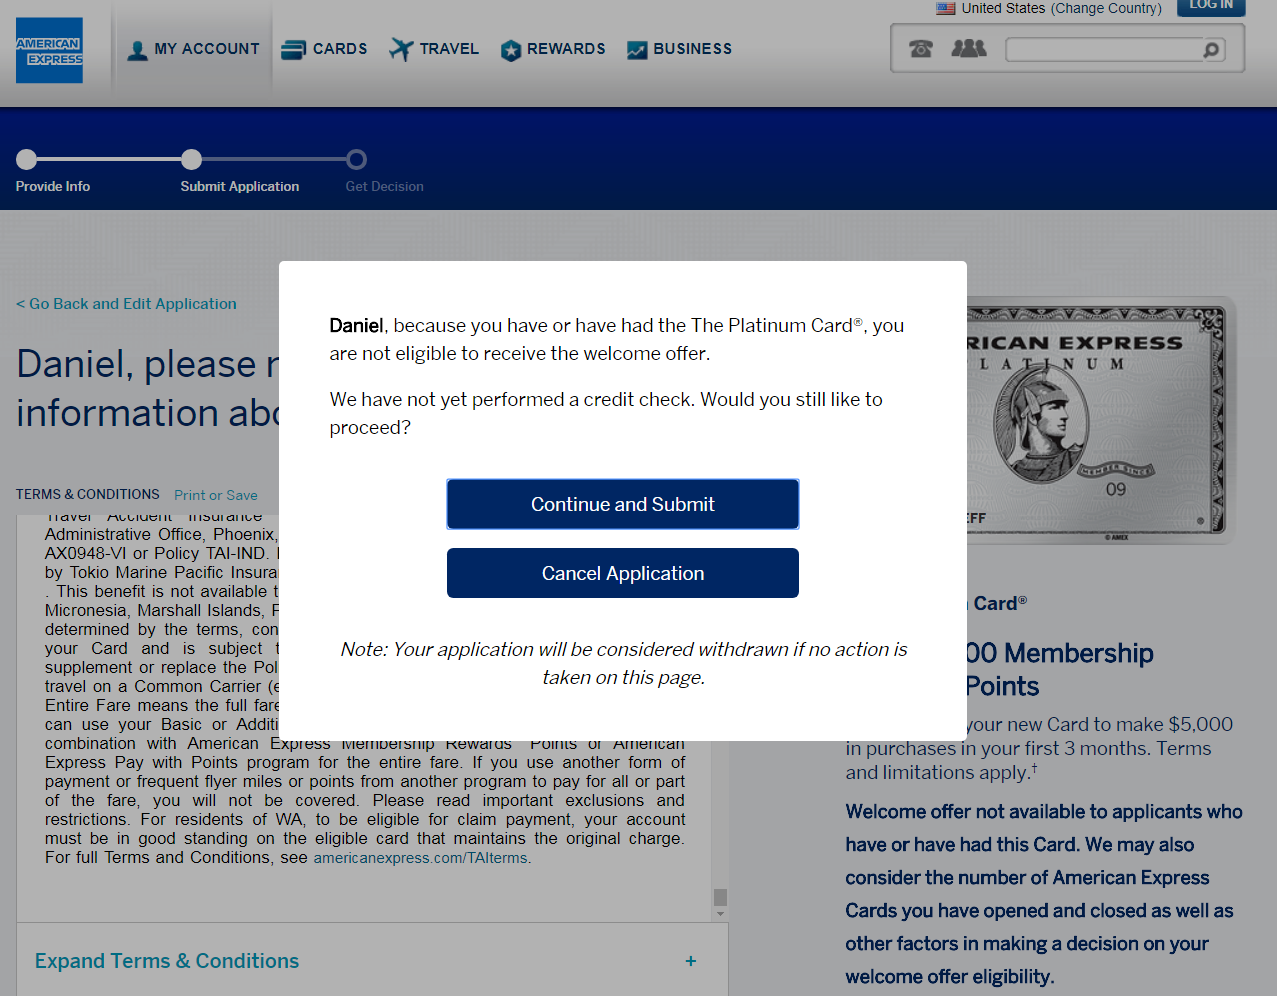 american express credit card application rules